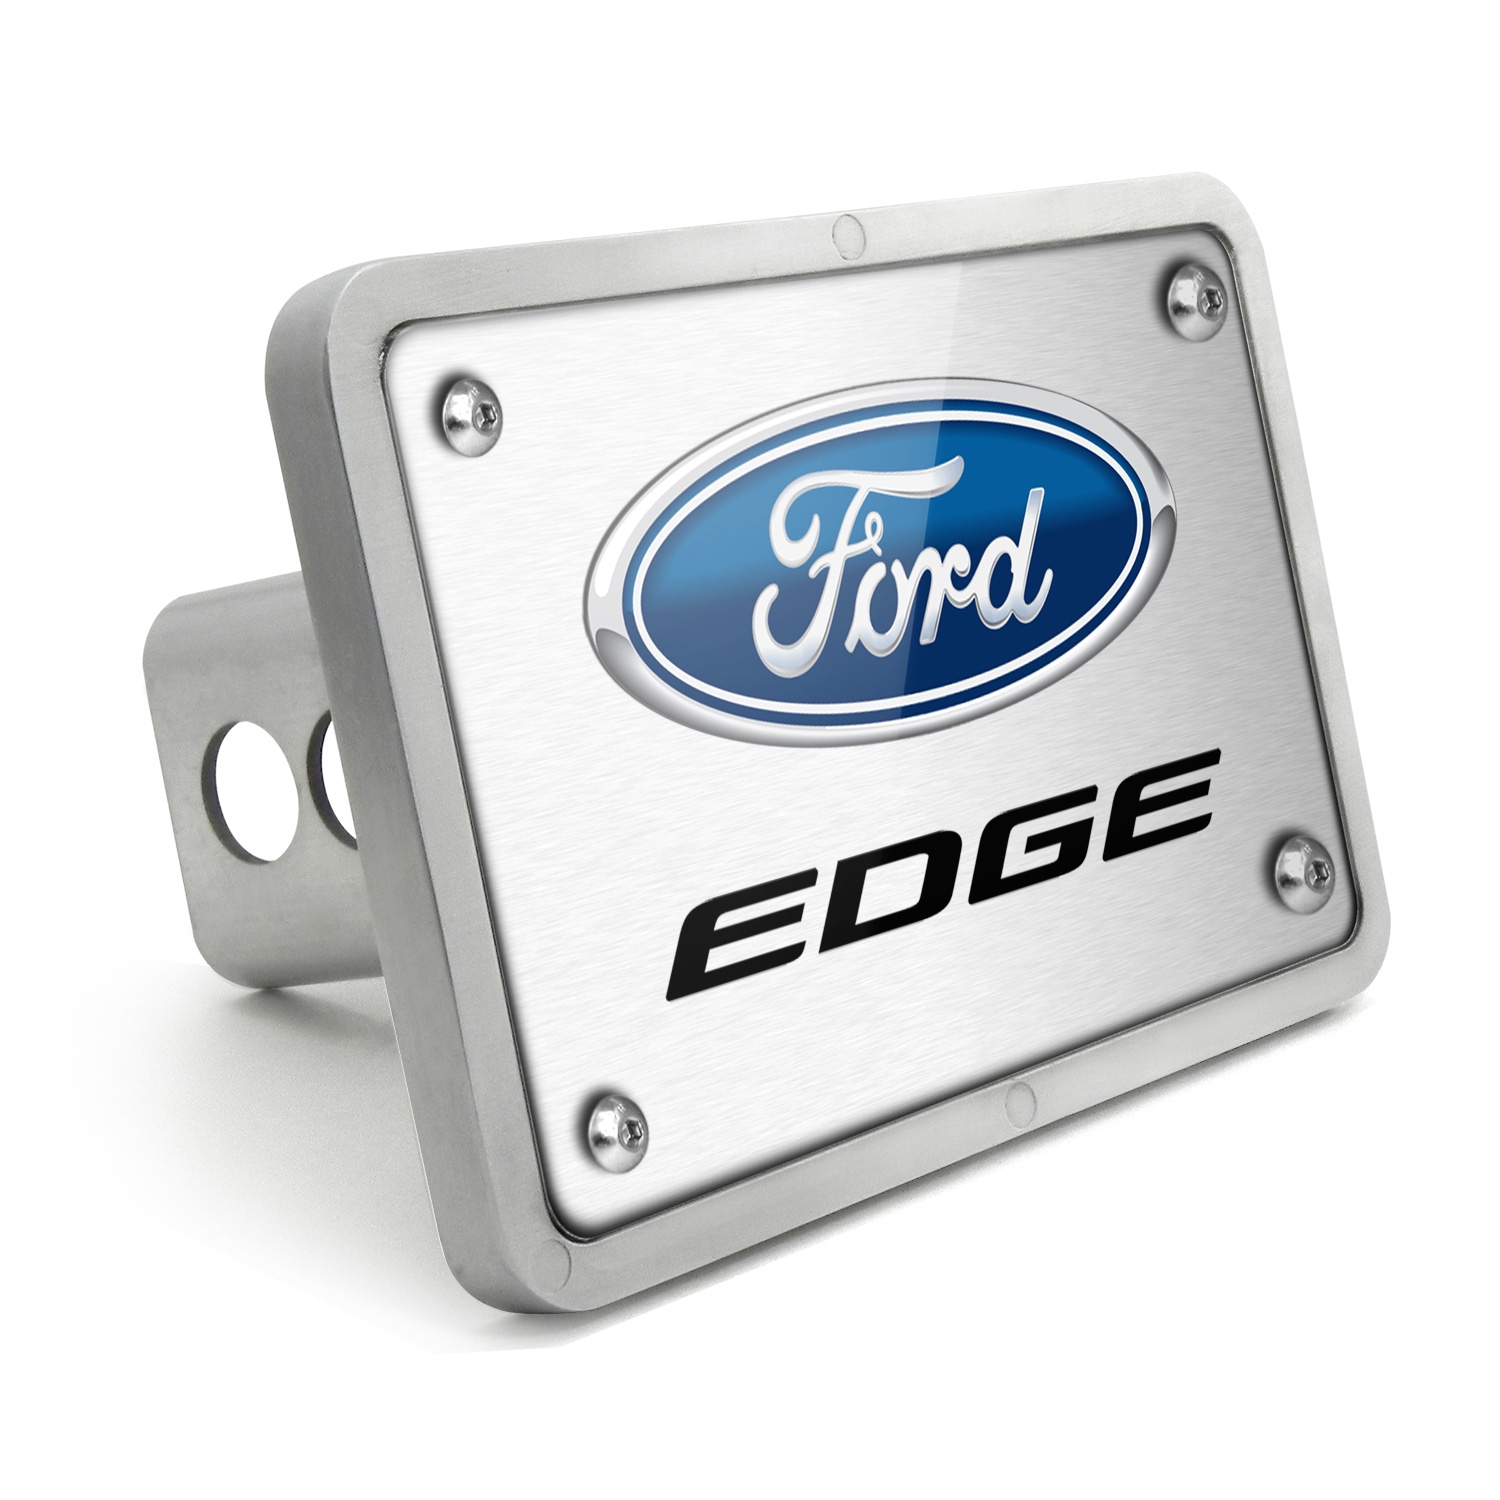 Ford Edge UV Graphic Brushed Silver Billet Aluminum 2 inch Tow Hitch Cover